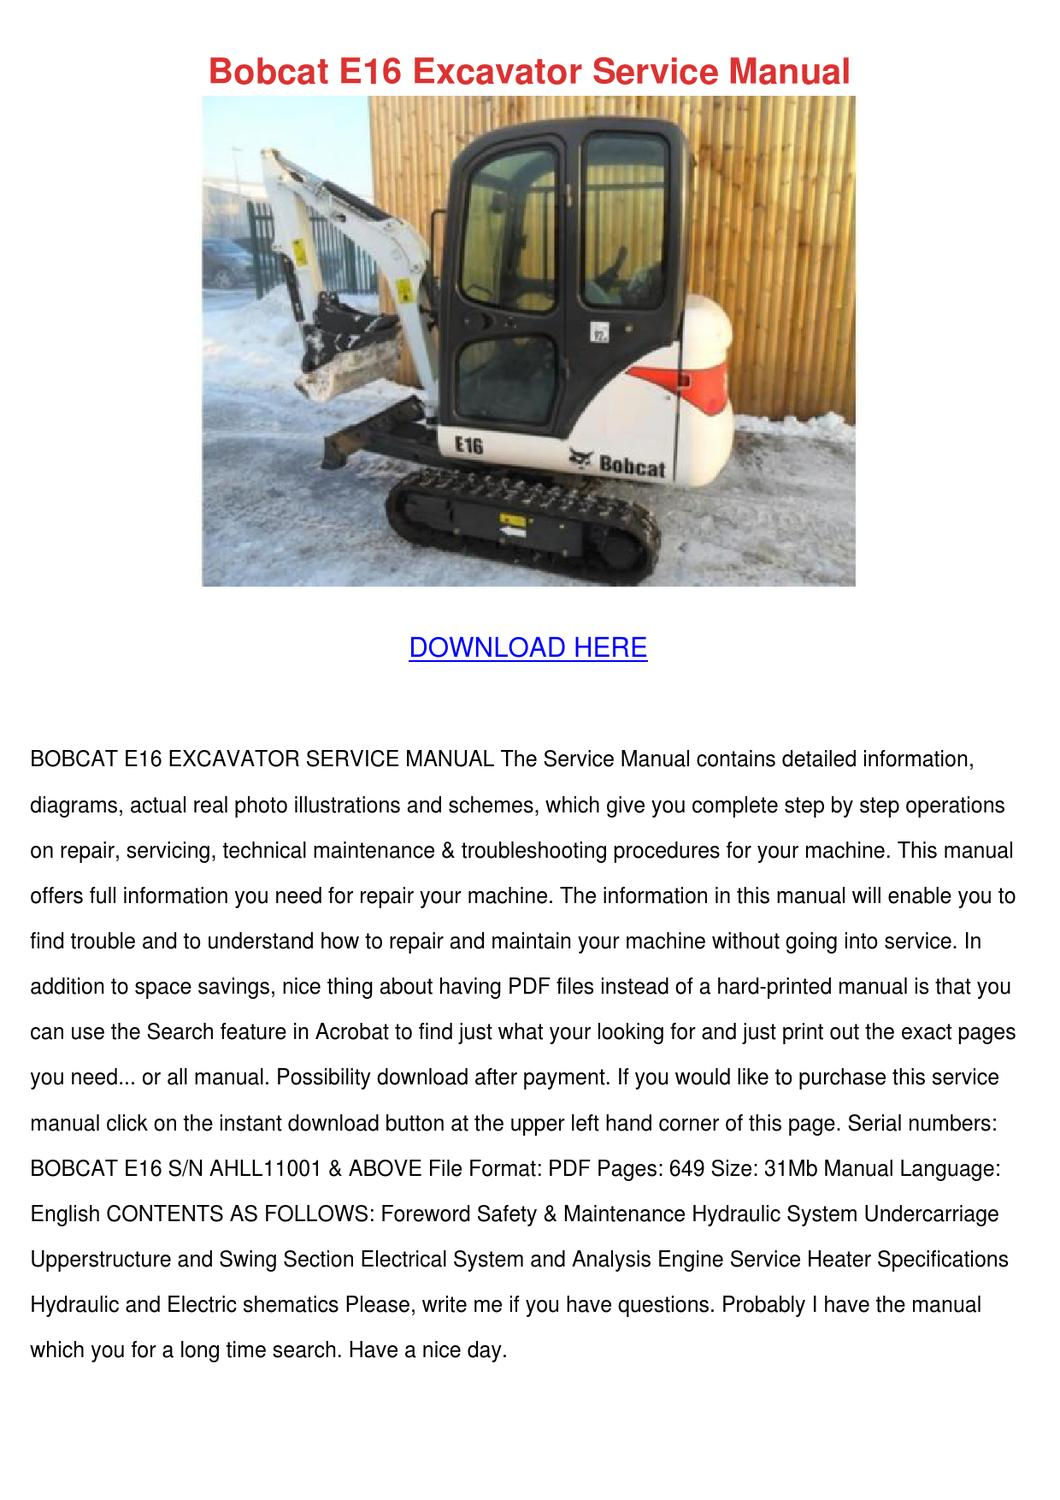 Bobcat E16 Excavator Service Manual by DonnyCollette - issuu